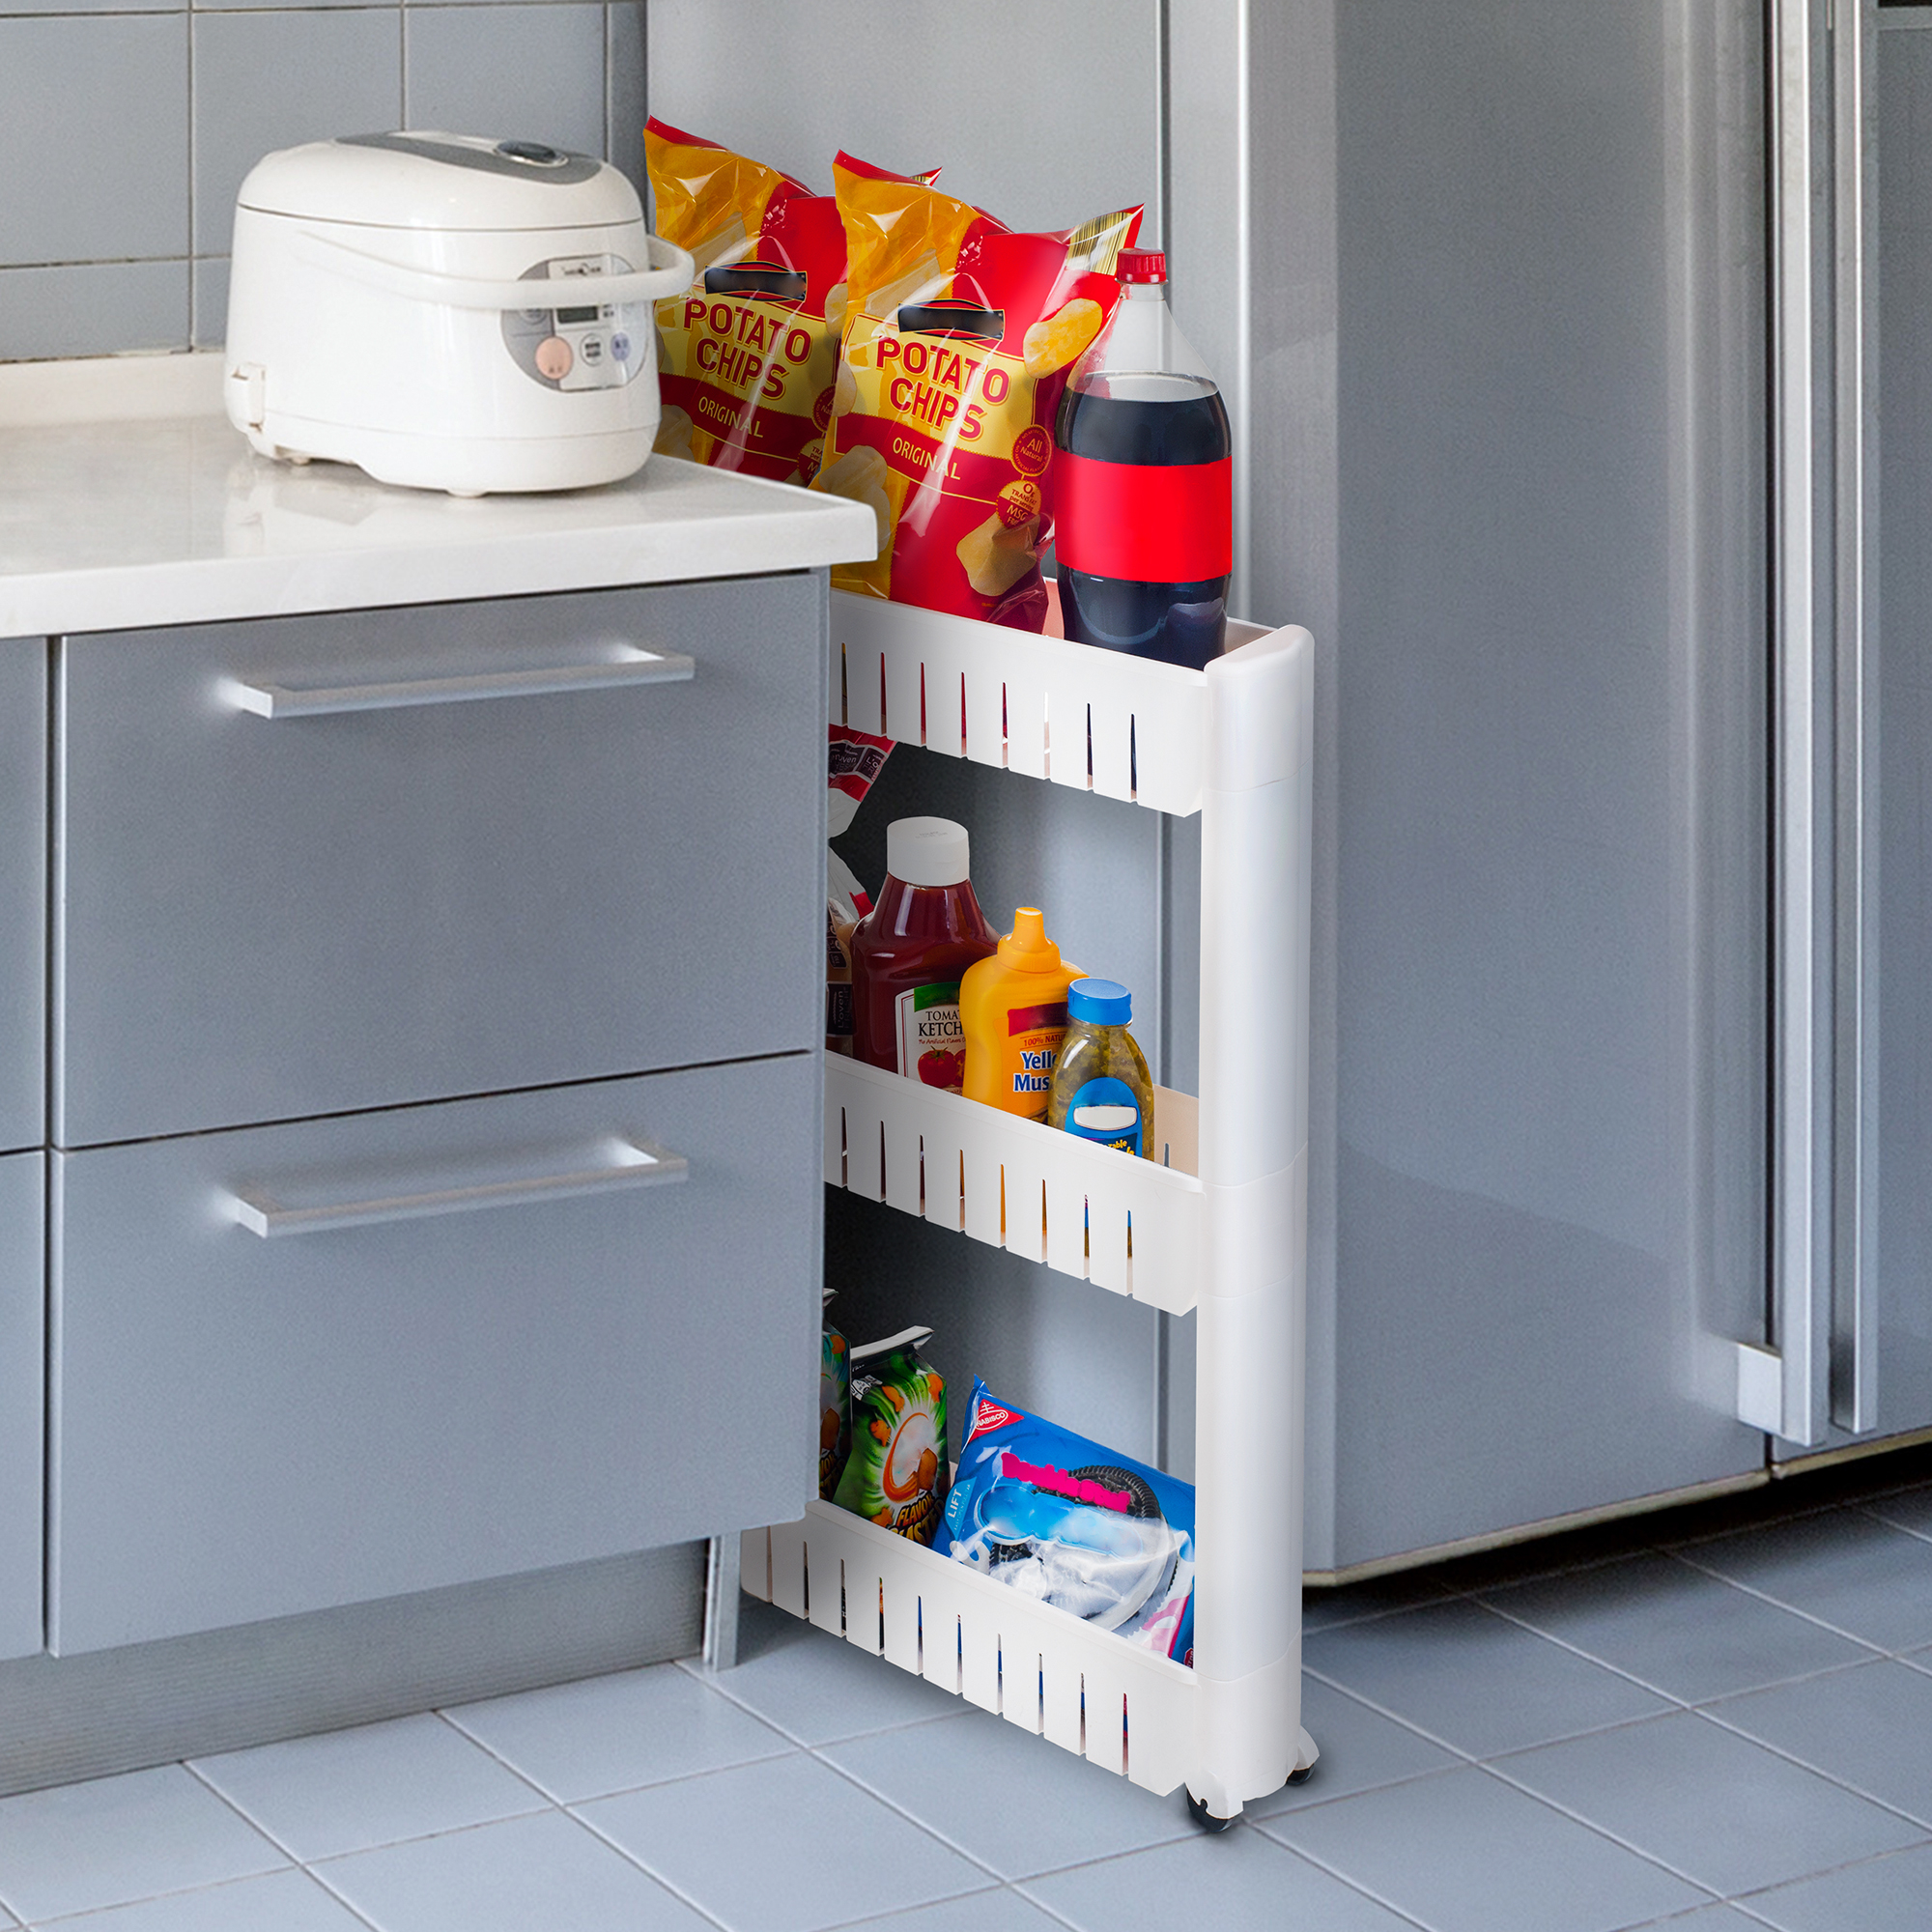 Three Tier Slim Slide Out Pantry on Rollers 5 Inch Wide Hide A Rack